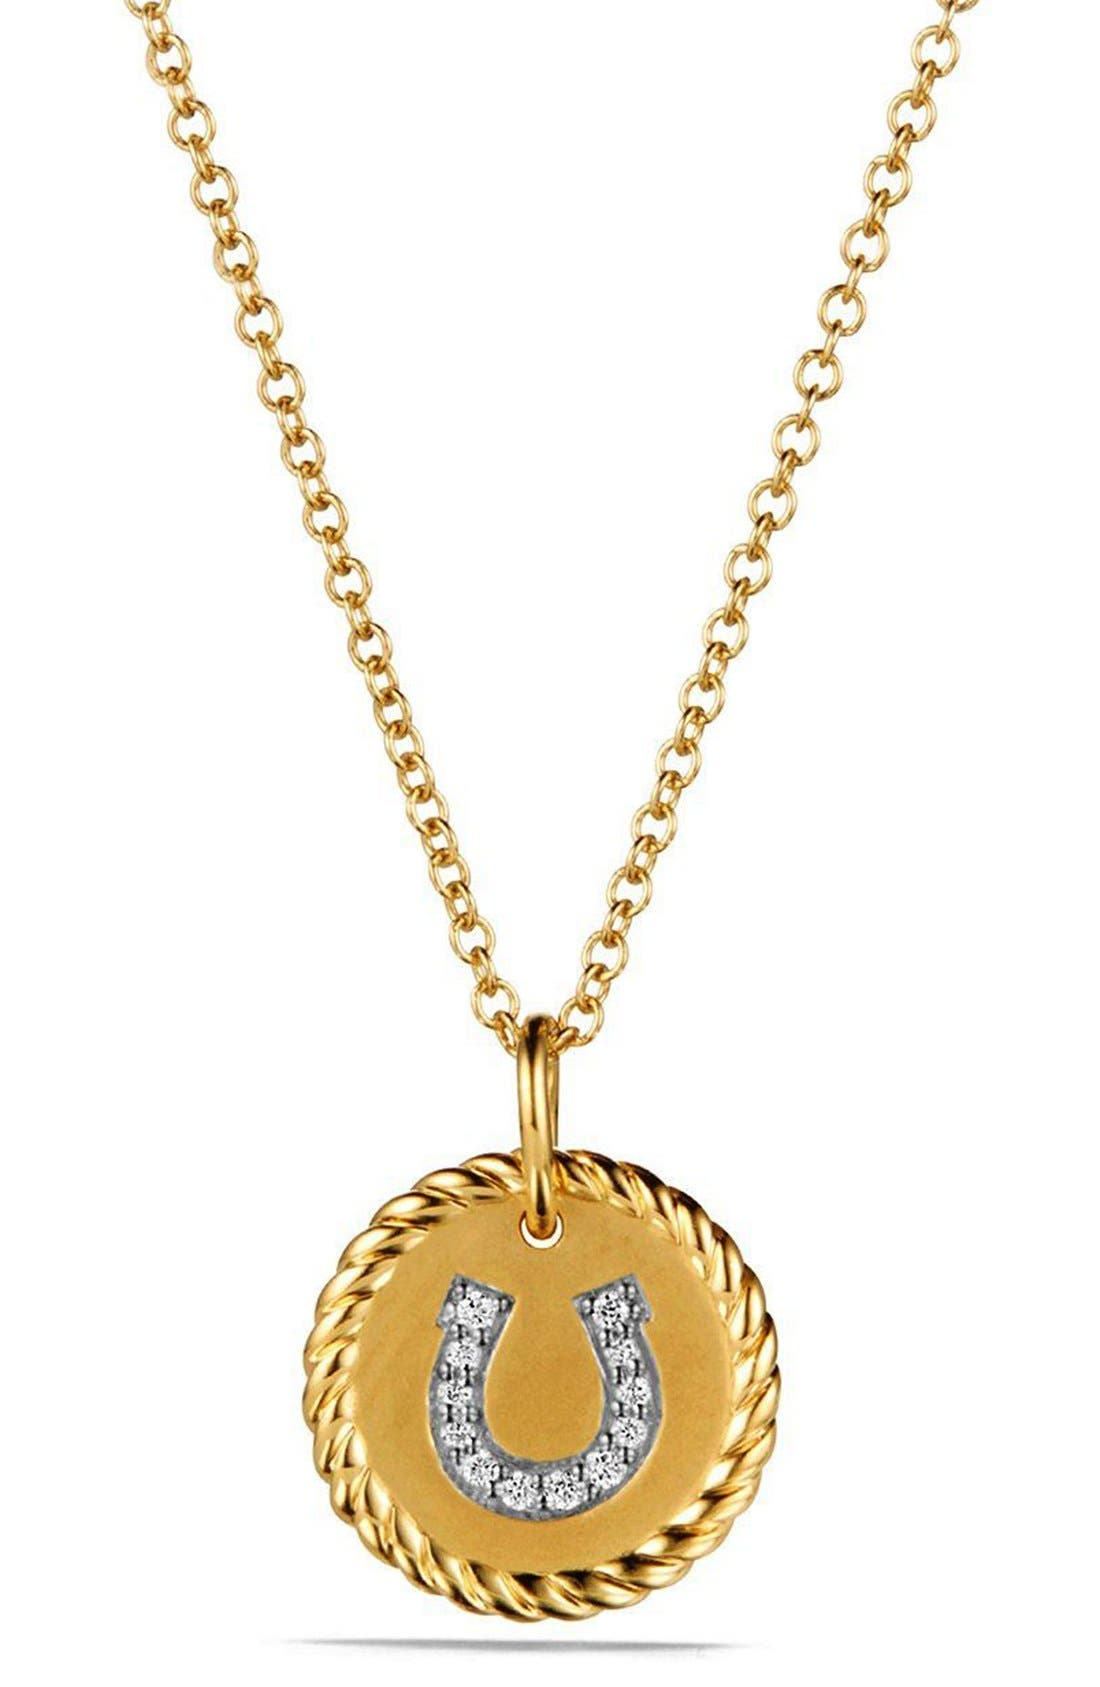 'Cable Collectibles' Horseshoe Charm Necklace with Diamonds in Gold,                             Main thumbnail 1, color,                             GOLD